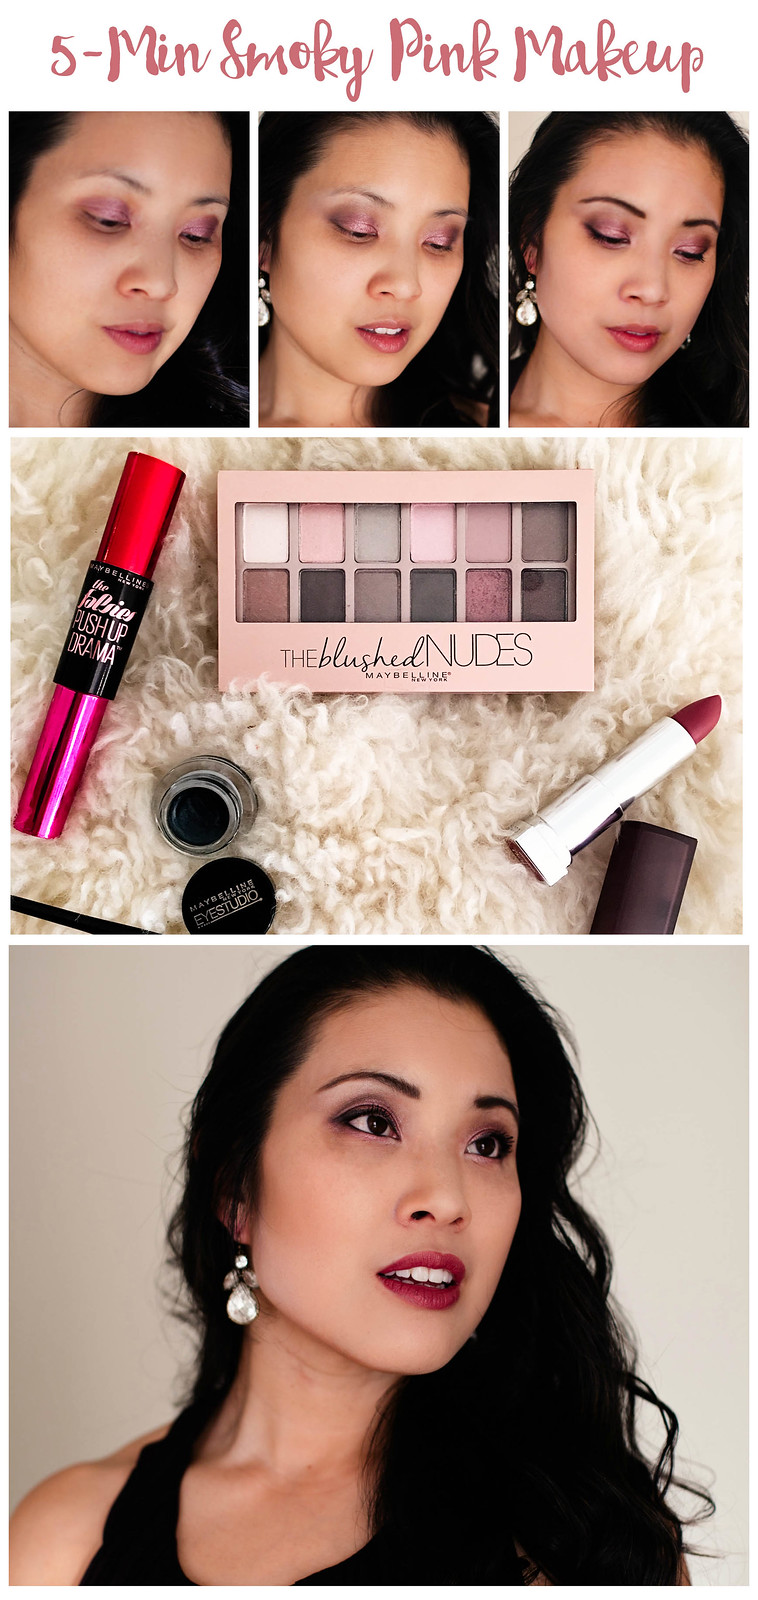 5 minute smoky pink eyeshadow makeup tutorial